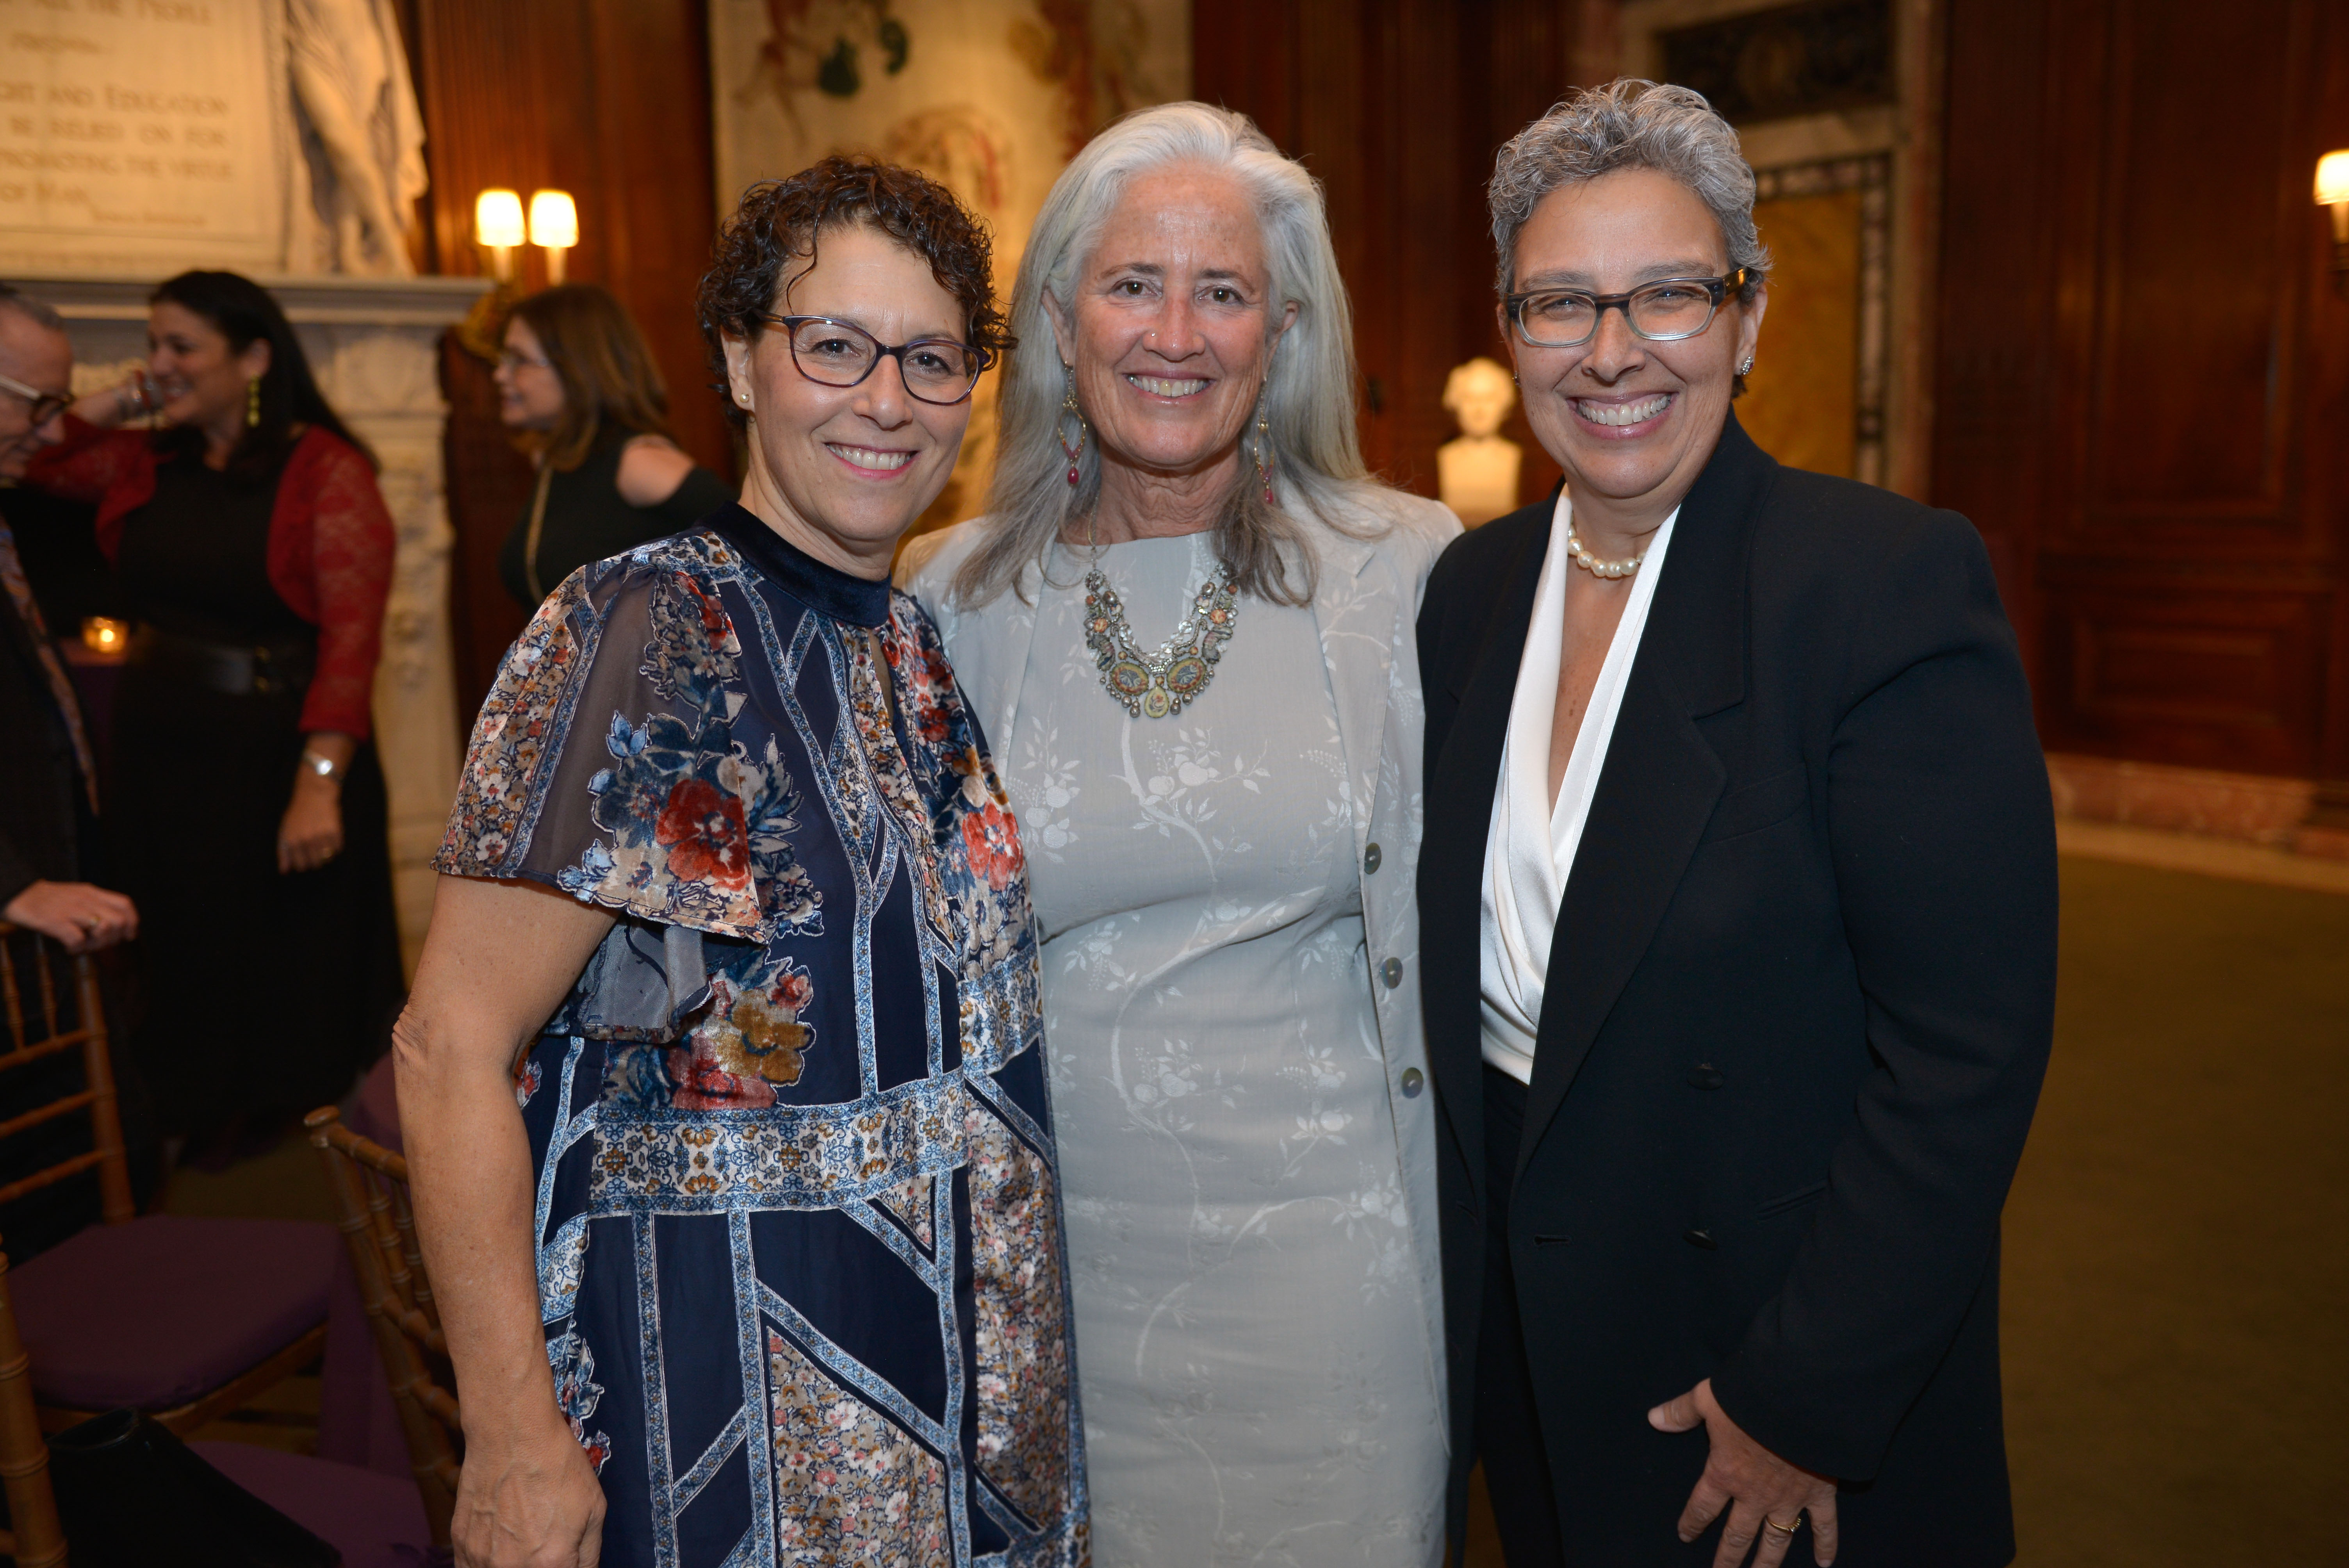 From left: 2017 Covenant Award Recipient Dr. Jane Shapiro, 2018 Covenant Award Recipient Deborah Newbrun, and 2016 Covenant Award Recipient Rabbi Benay Lappe.